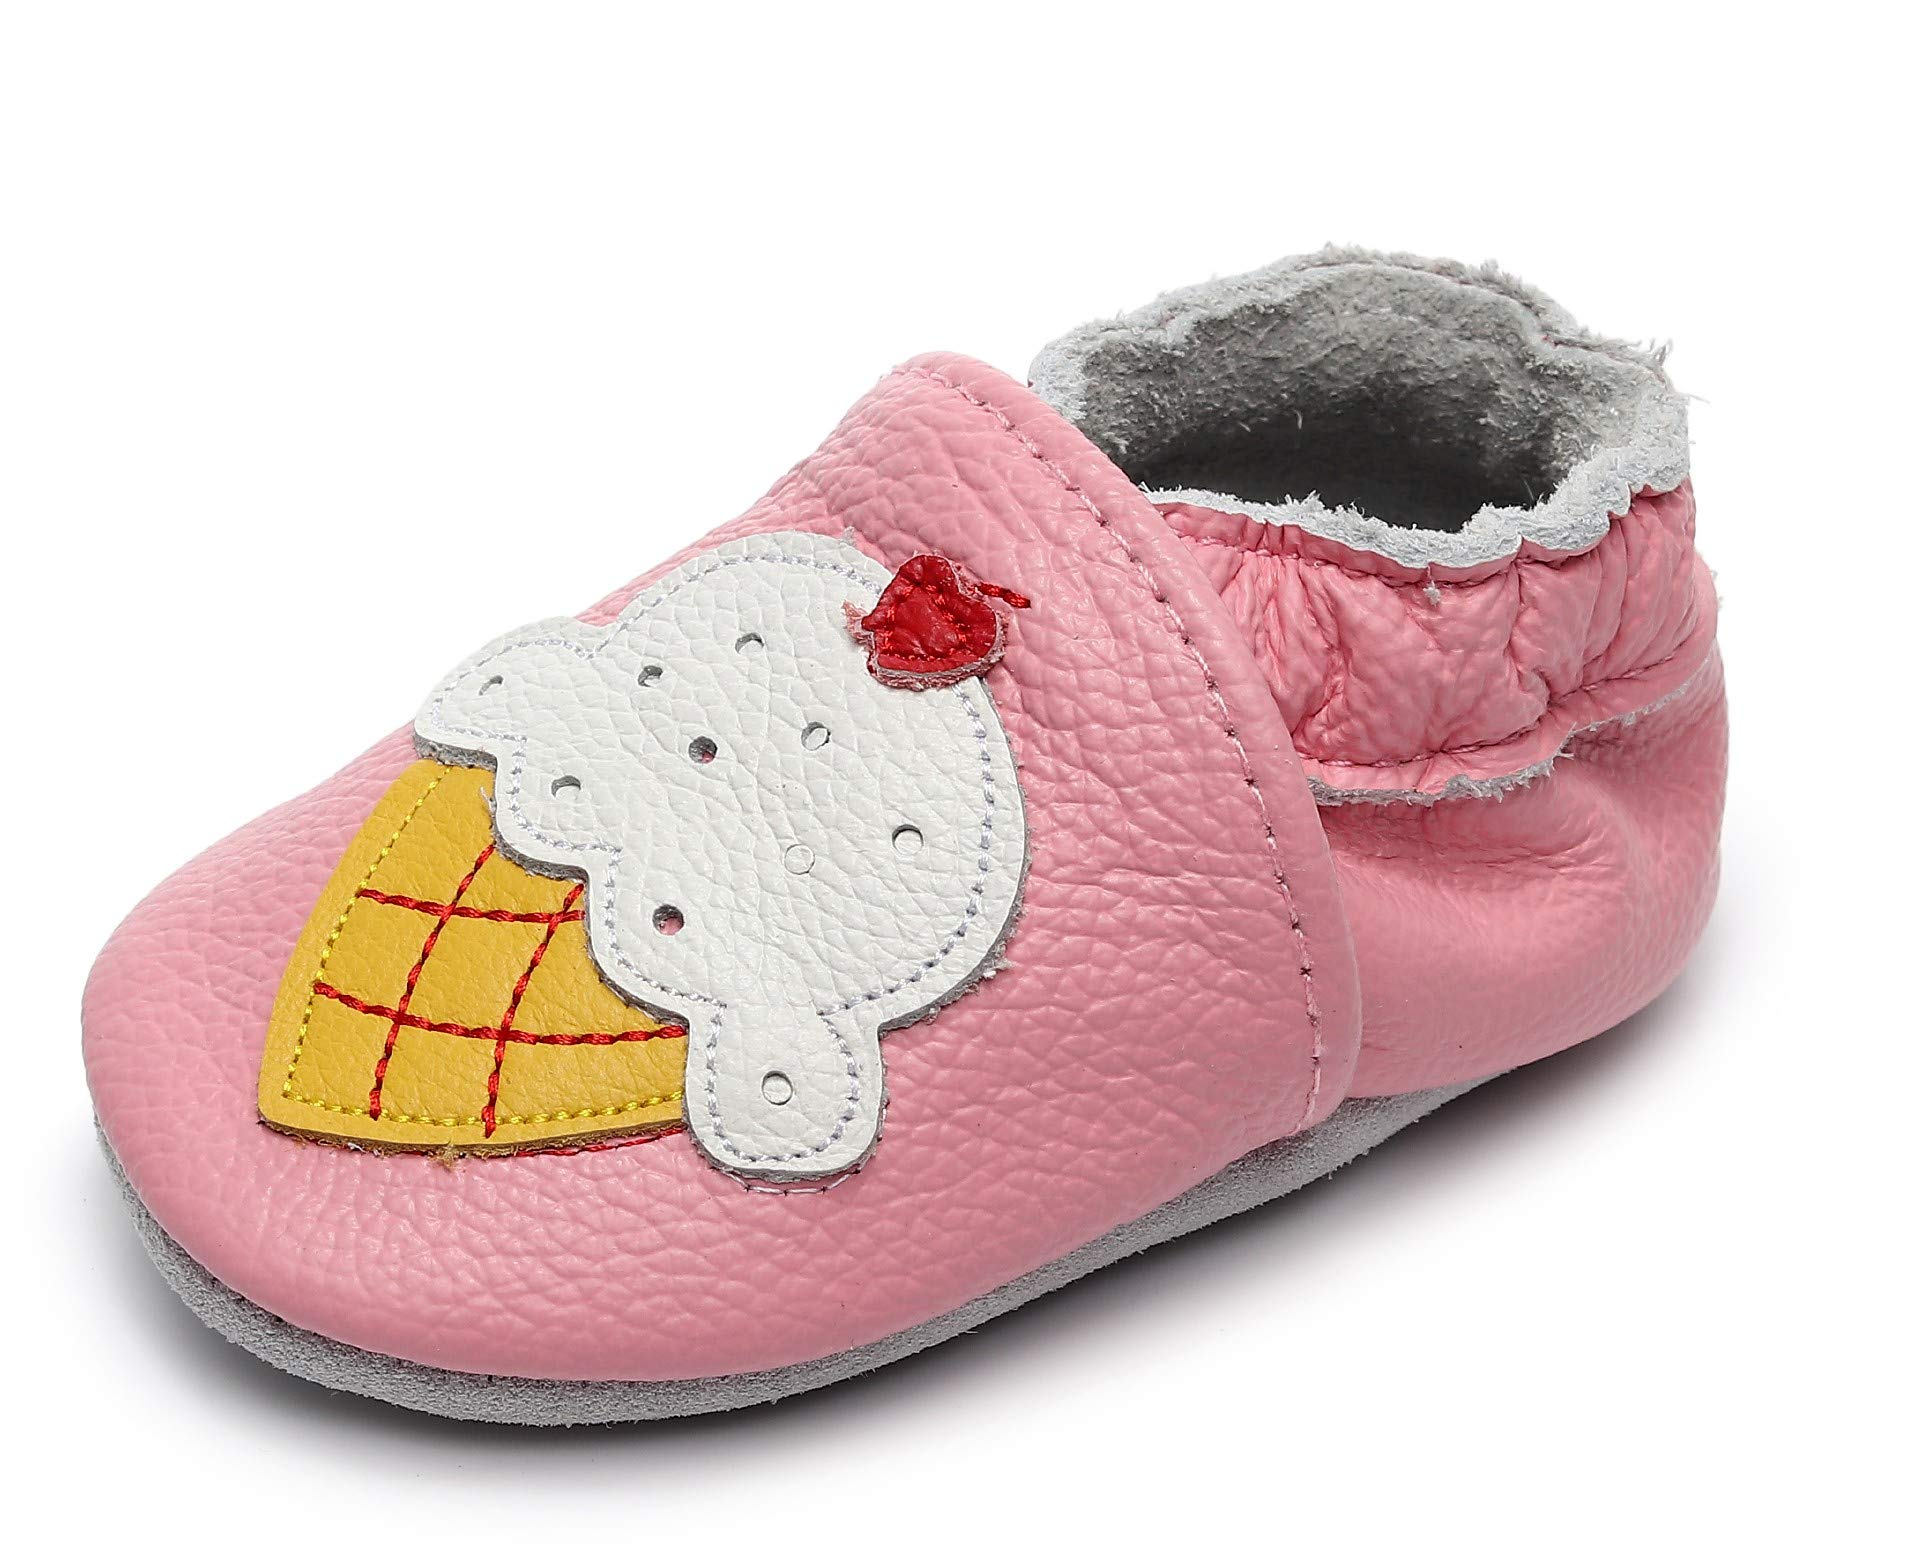 """efd4beea40ce Bebila Baby Boys Girls Shoes Leather Baby Moccasins Soft Soled Infant  Crawling Slippers for 0-24 Months (US 8 5.71""""  18-24months see Size Chart"""